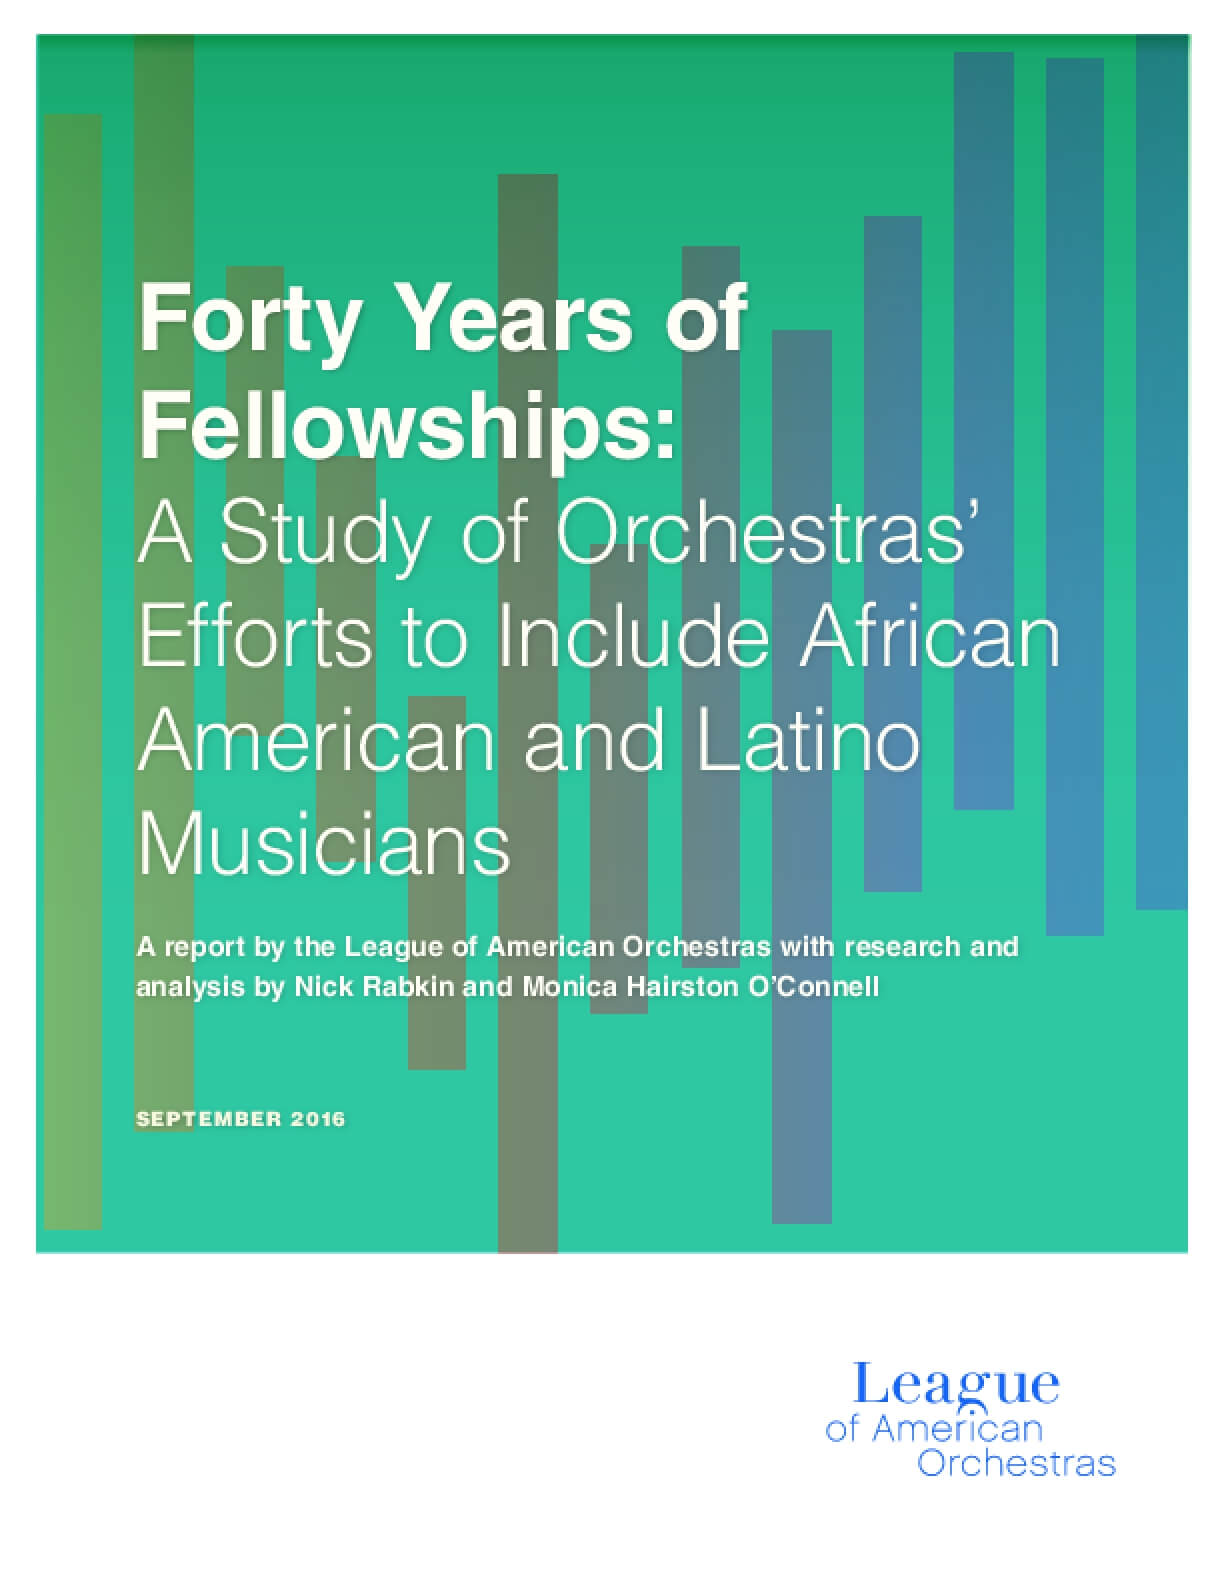 Forty Years of Fellowships: A Study of Orchestras' Efforts to Include African American and Latino Musicians